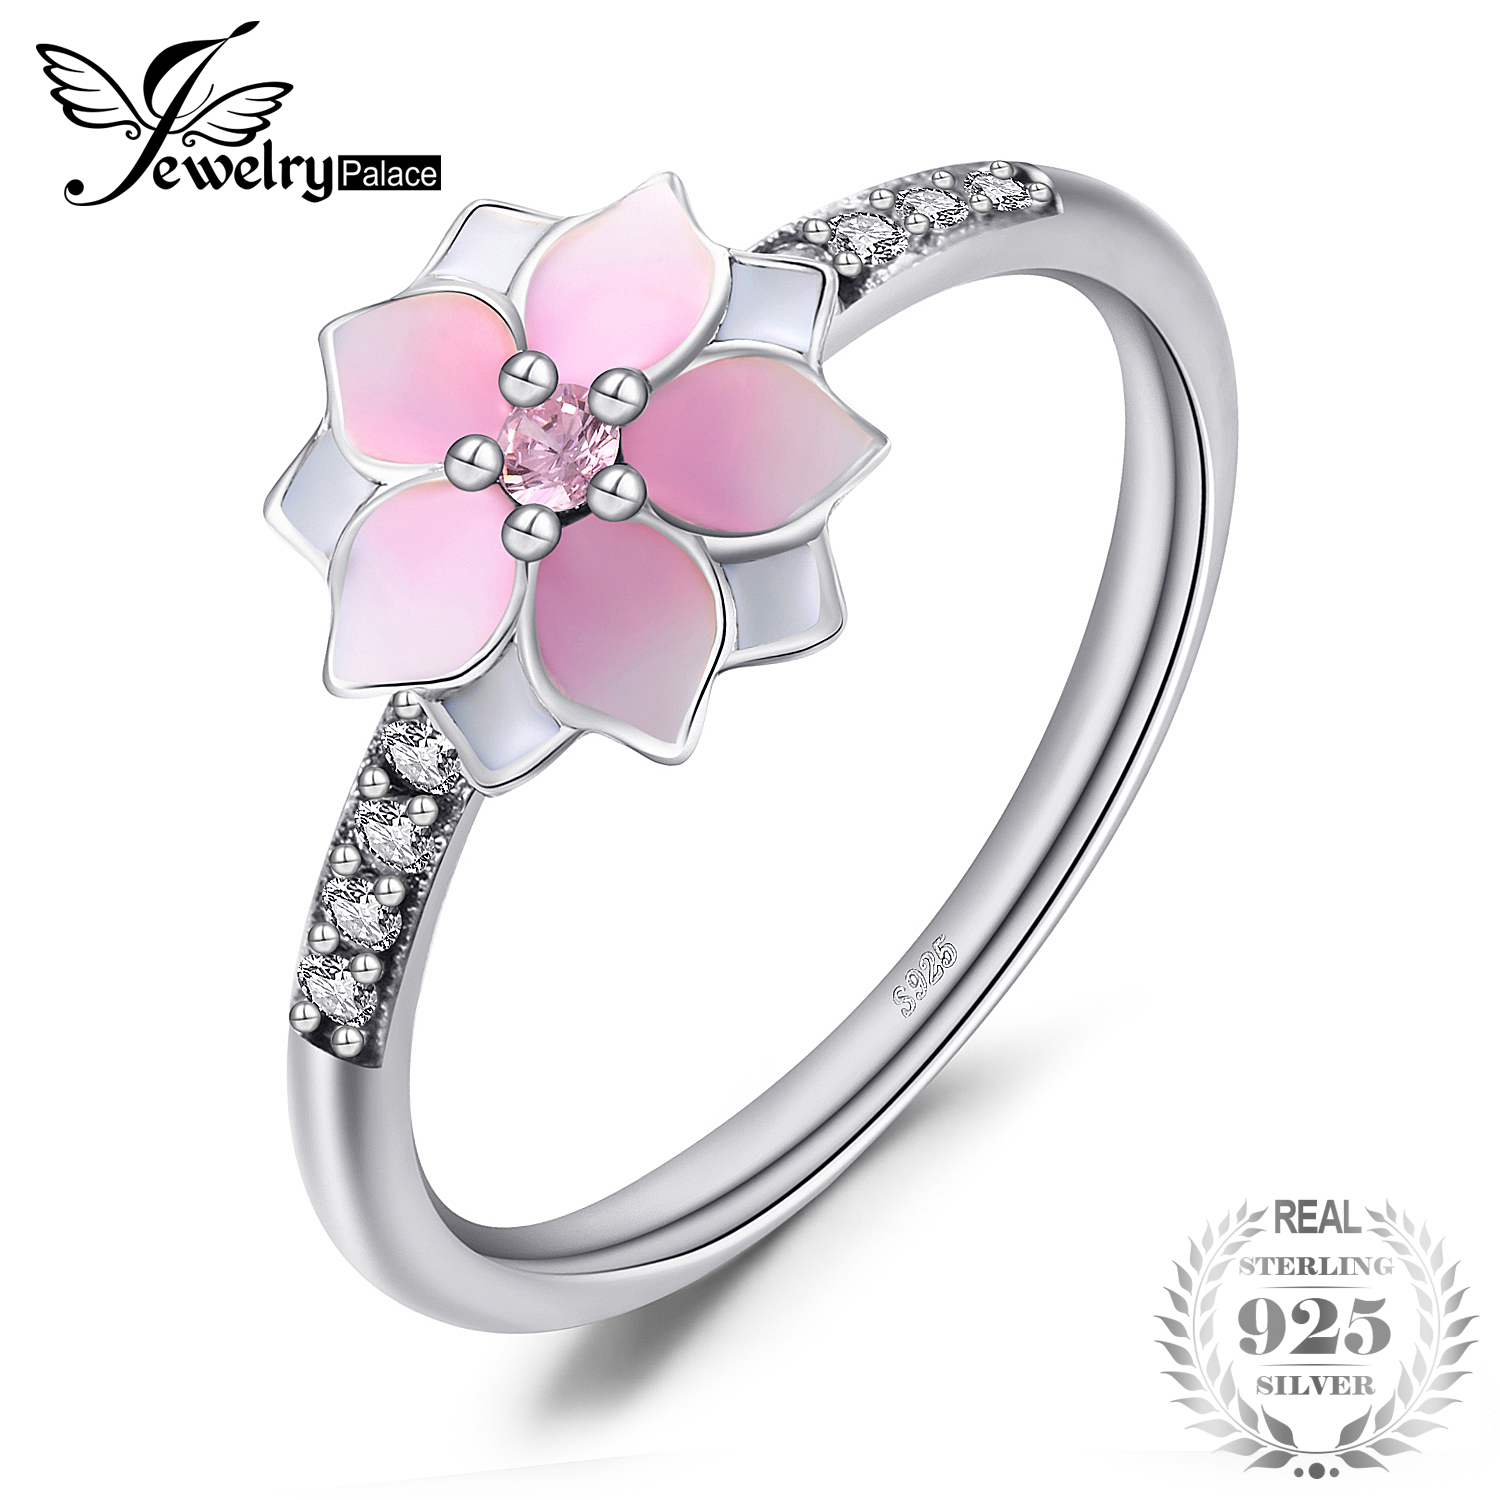 Jewelrypalace 925 Sterling Silver Rings Flower Magnolia Cubic Zirconia Gradient Pink Enamel Cocktail Ring Fine Jewelry GiftsJewelrypalace 925 Sterling Silver Rings Flower Magnolia Cubic Zirconia Gradient Pink Enamel Cocktail Ring Fine Jewelry Gifts